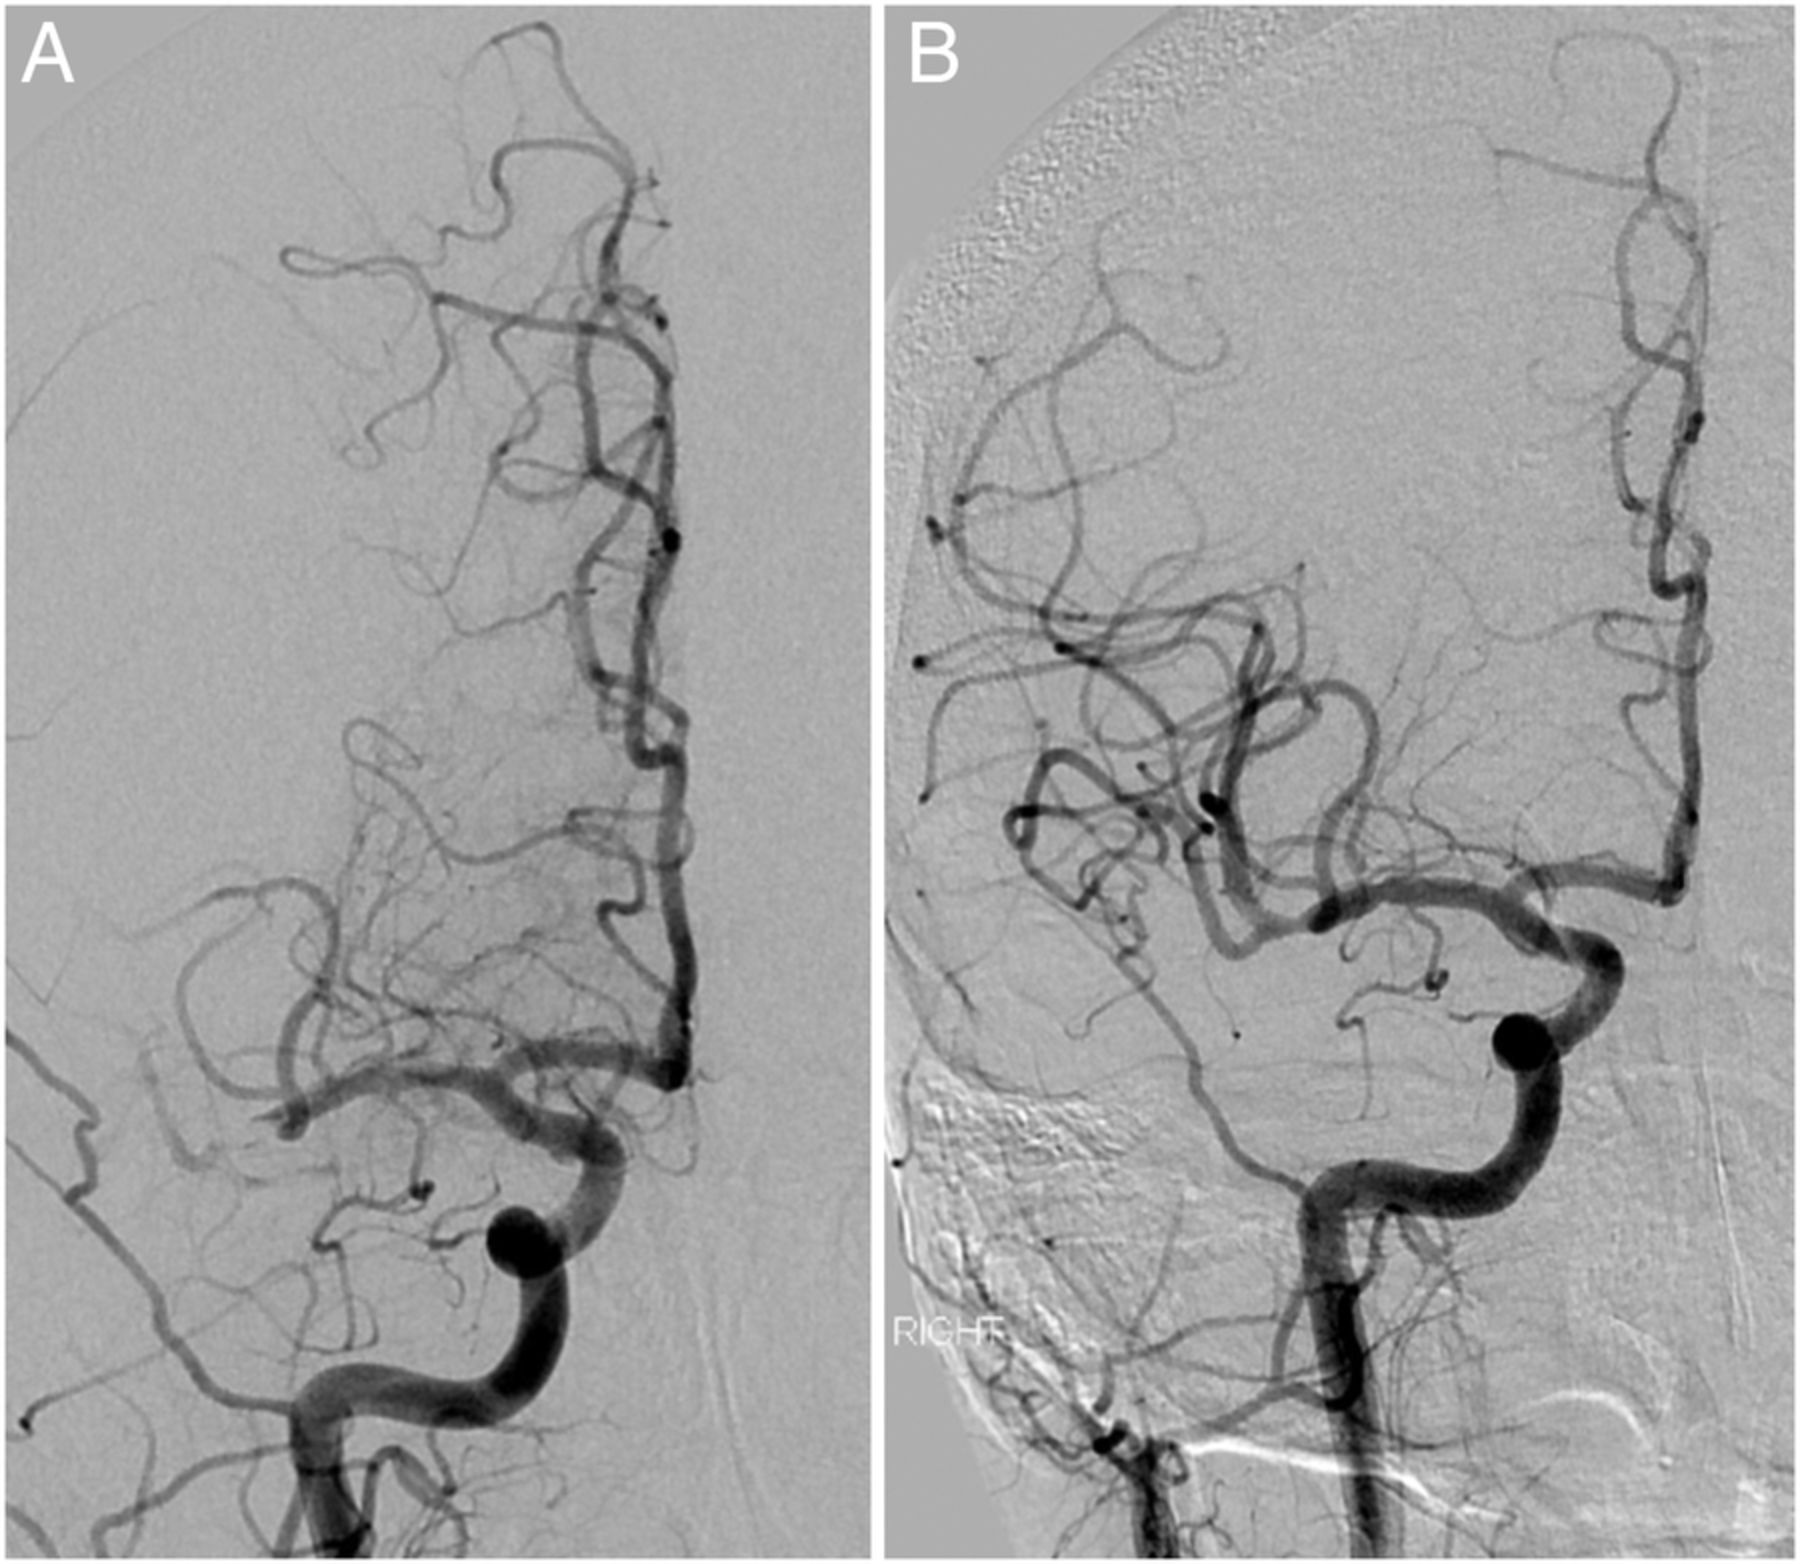 A case of right middle cerebral artery 'tendonectomy